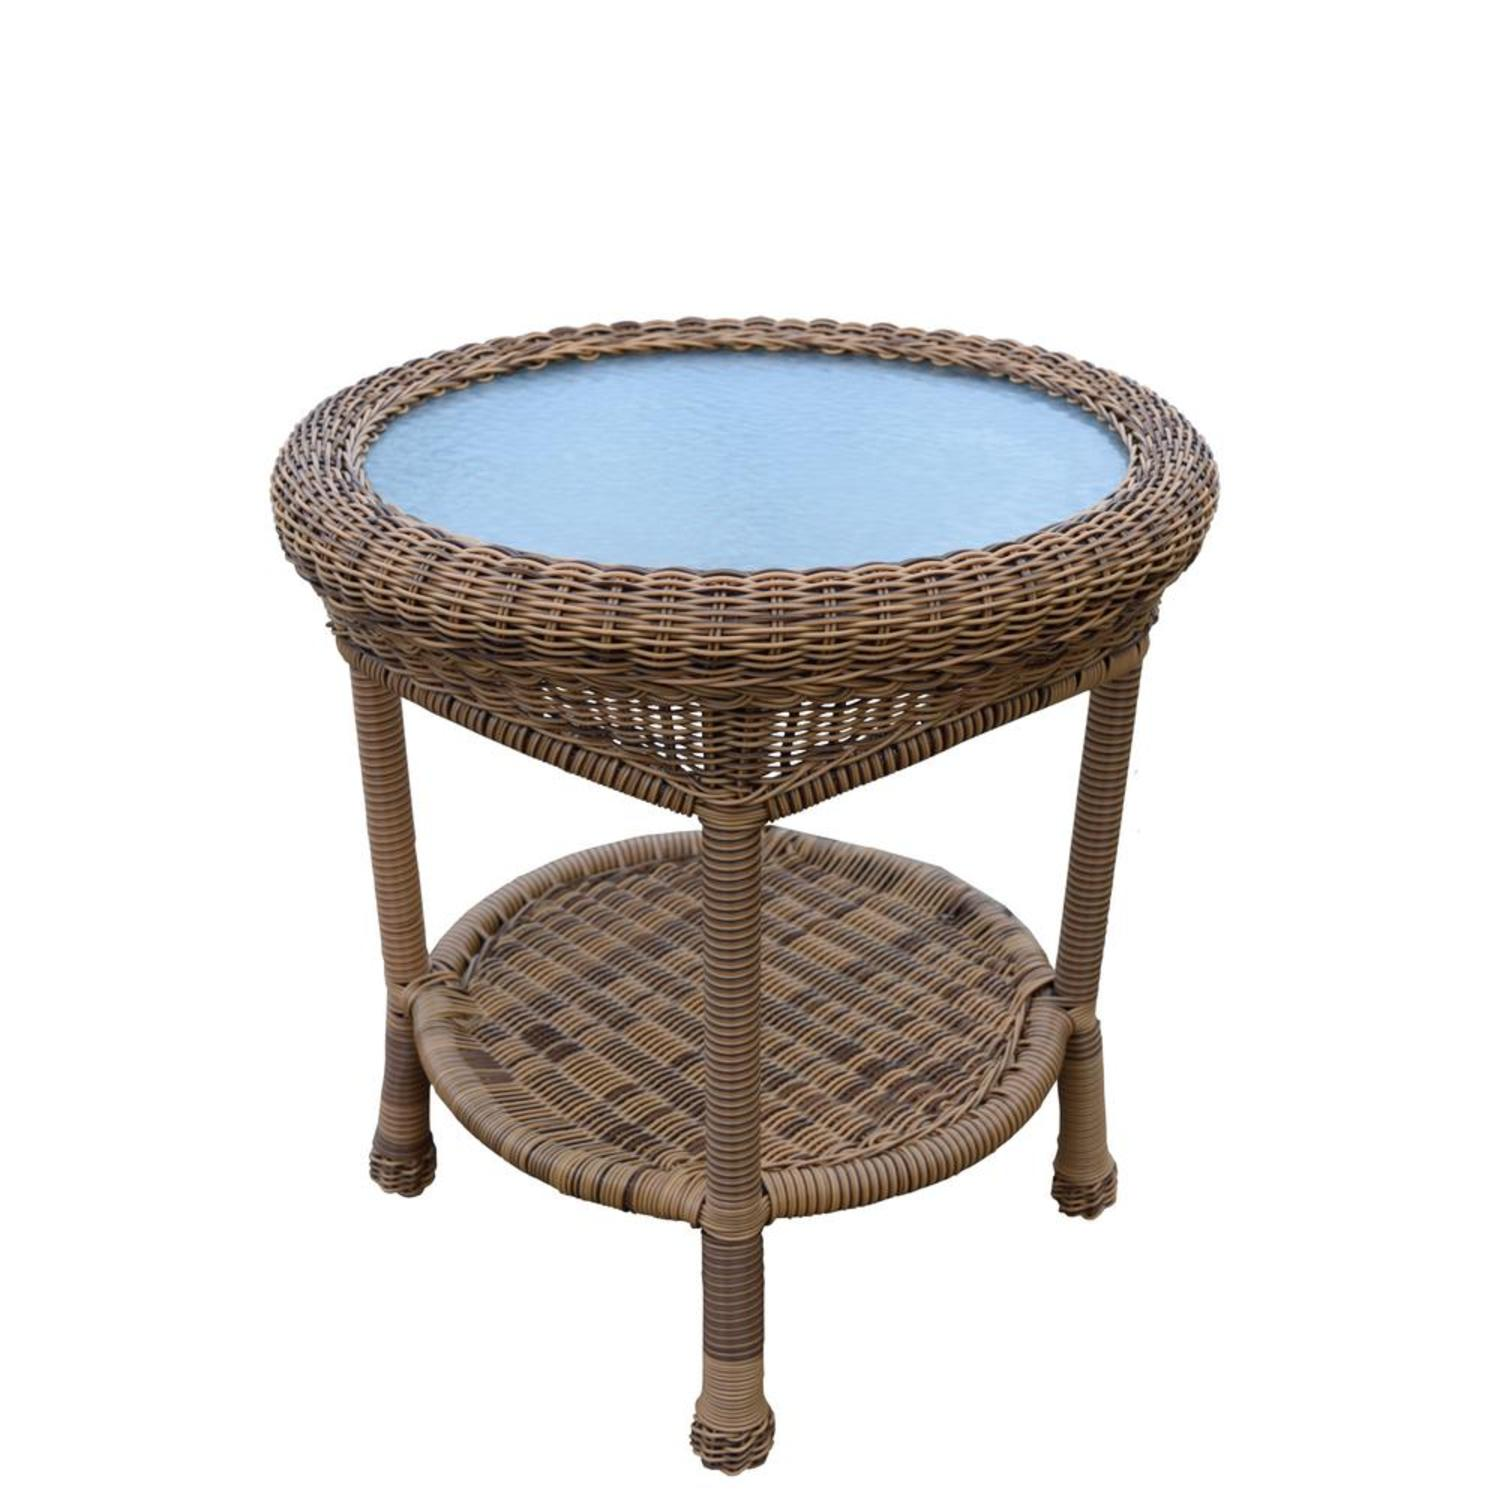 22 25 Natural Brown Two Level Resin Wicker End Table With